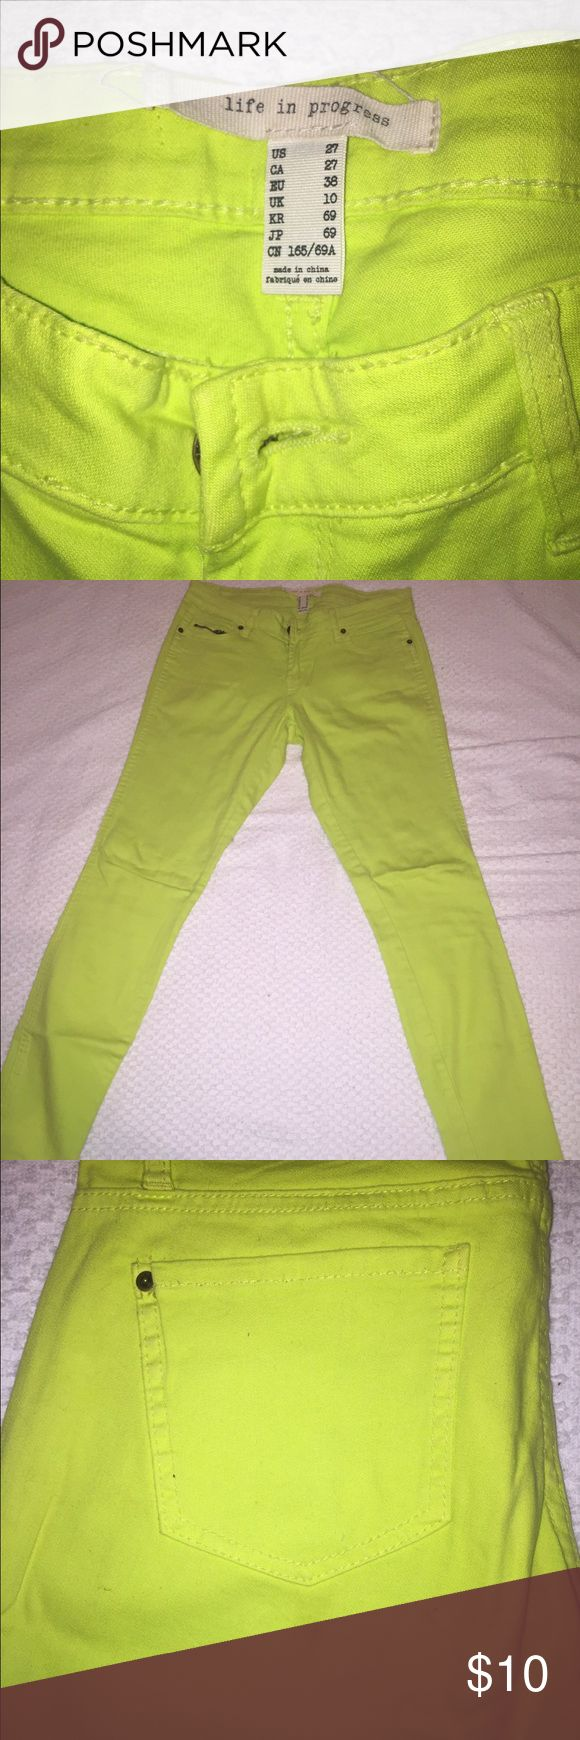 Forever 21 Neon Greenish-Yellow Skinny Jeans These cute neon jeans are a staple to any wardrobe. Nice summer jeans! Size 27 Forever 21 Jeans Skinny